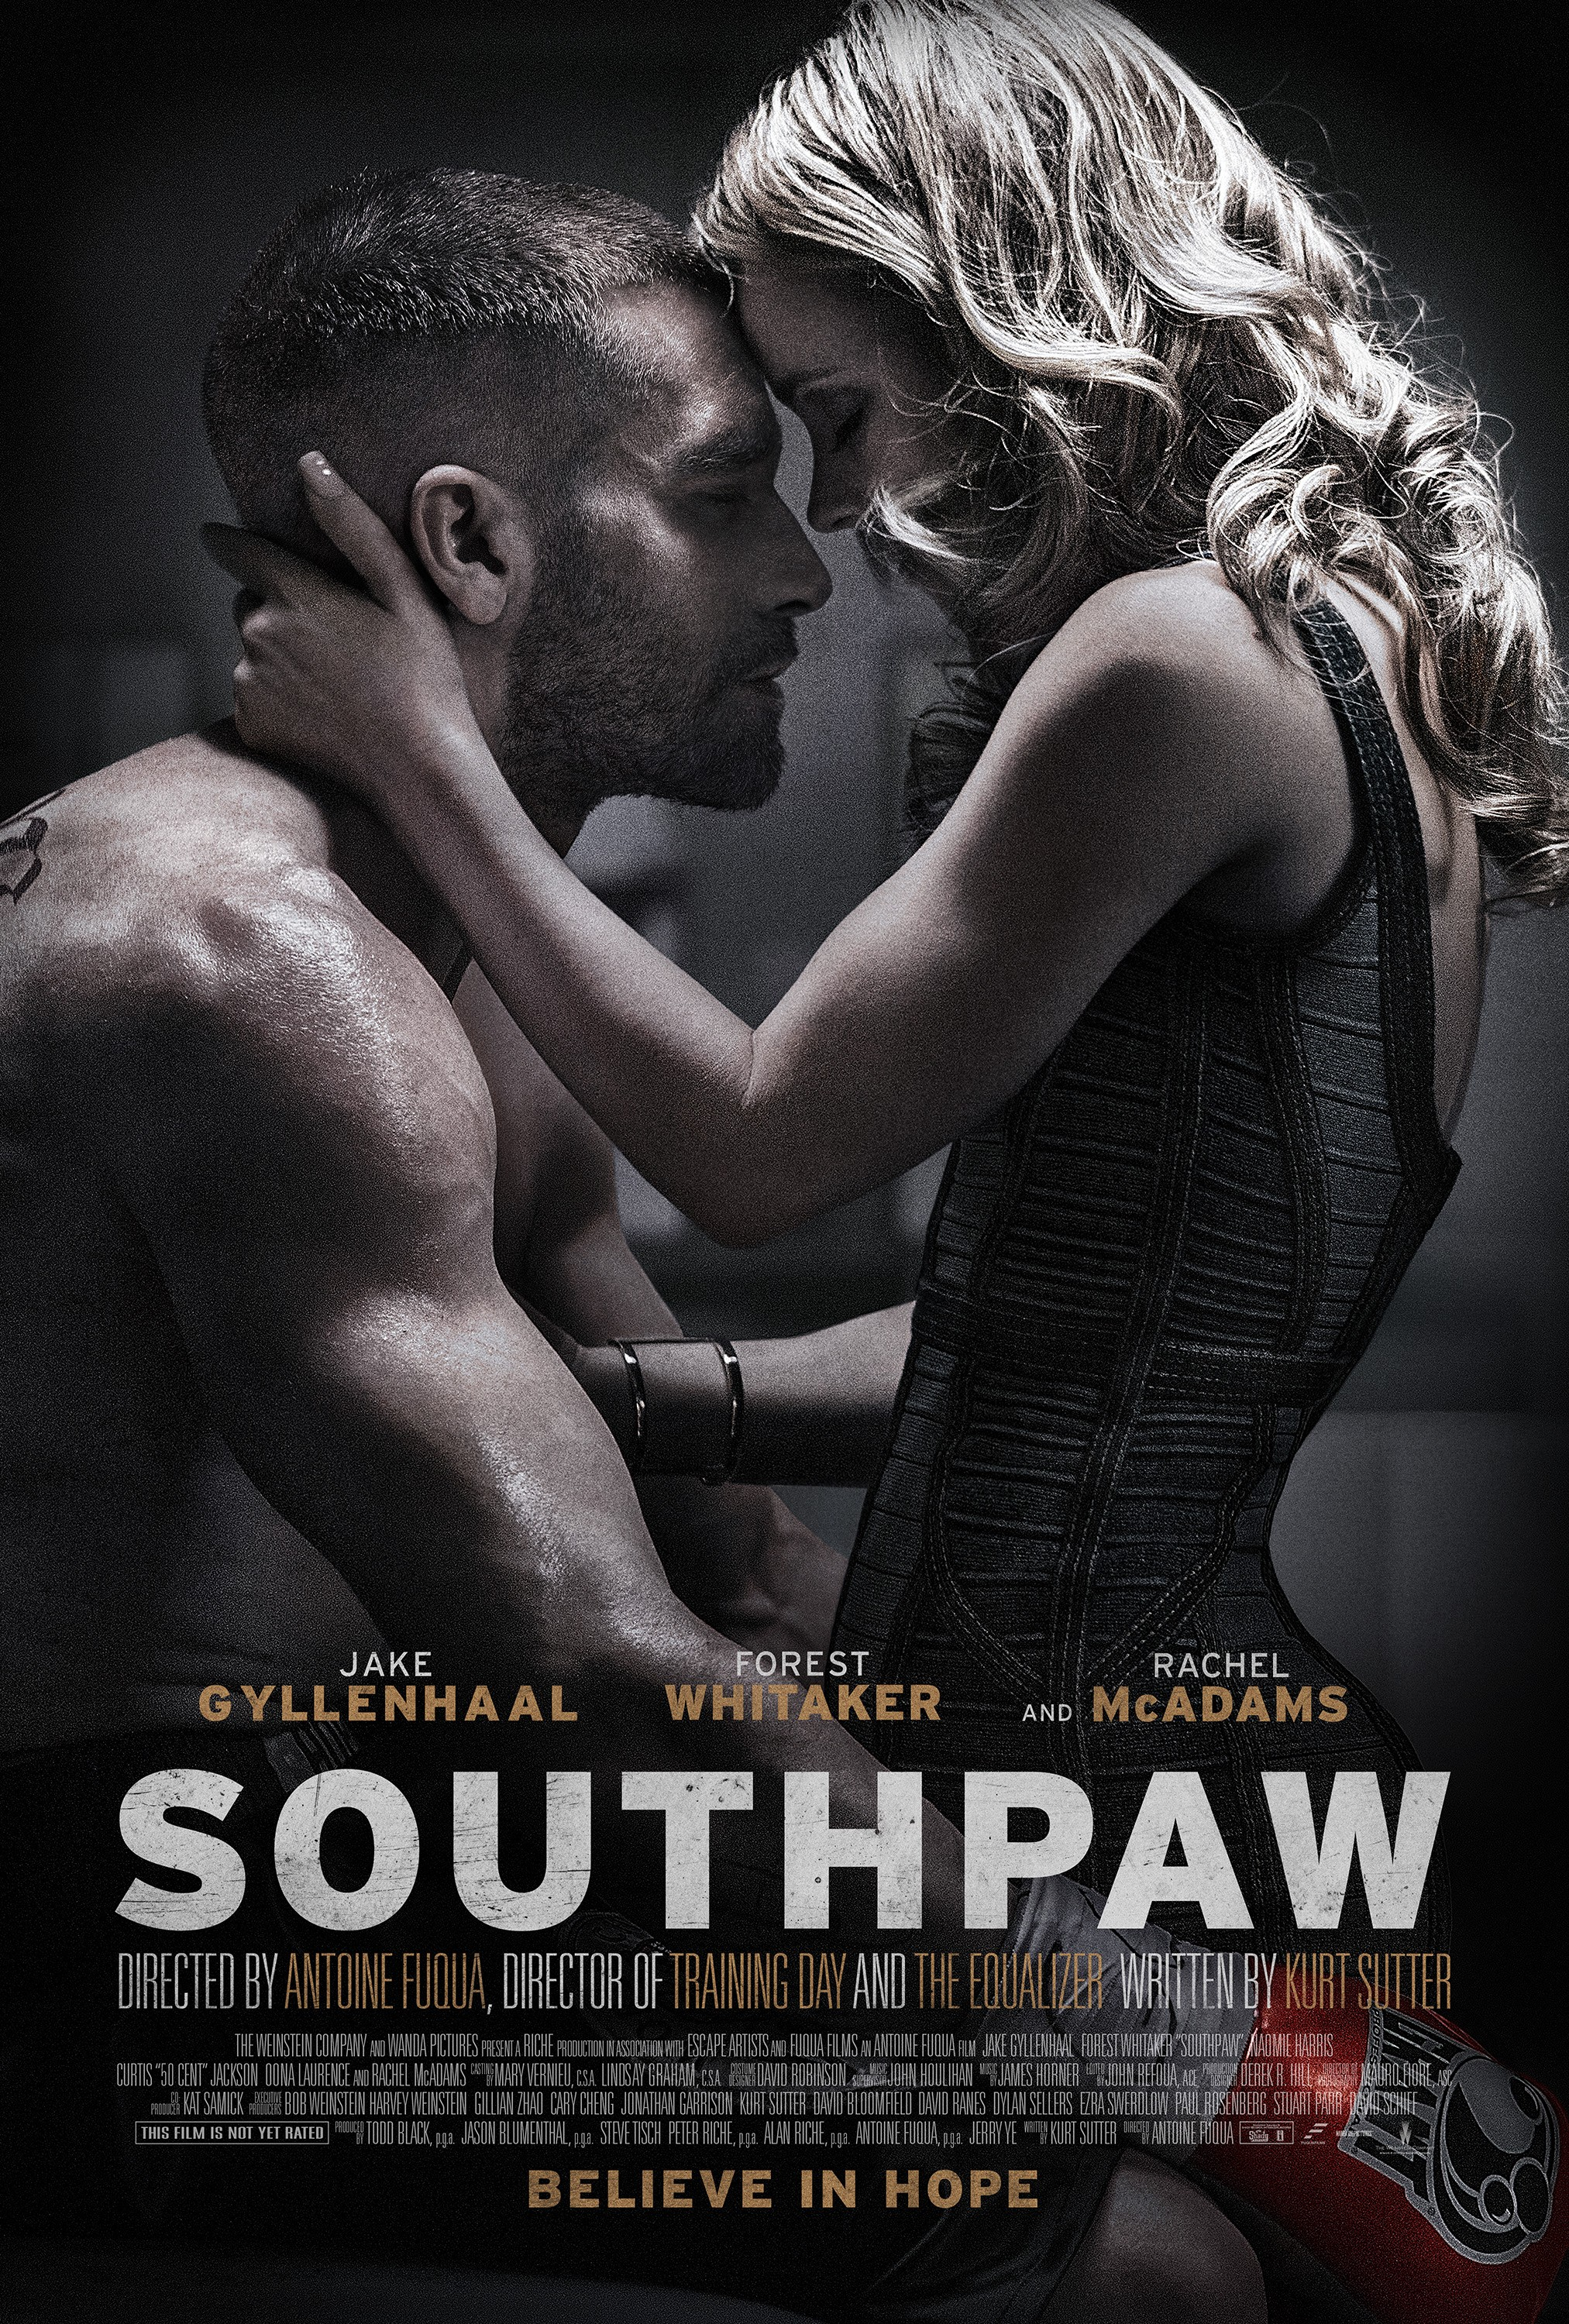 Southpaw-Poster XLG-08Junho2015